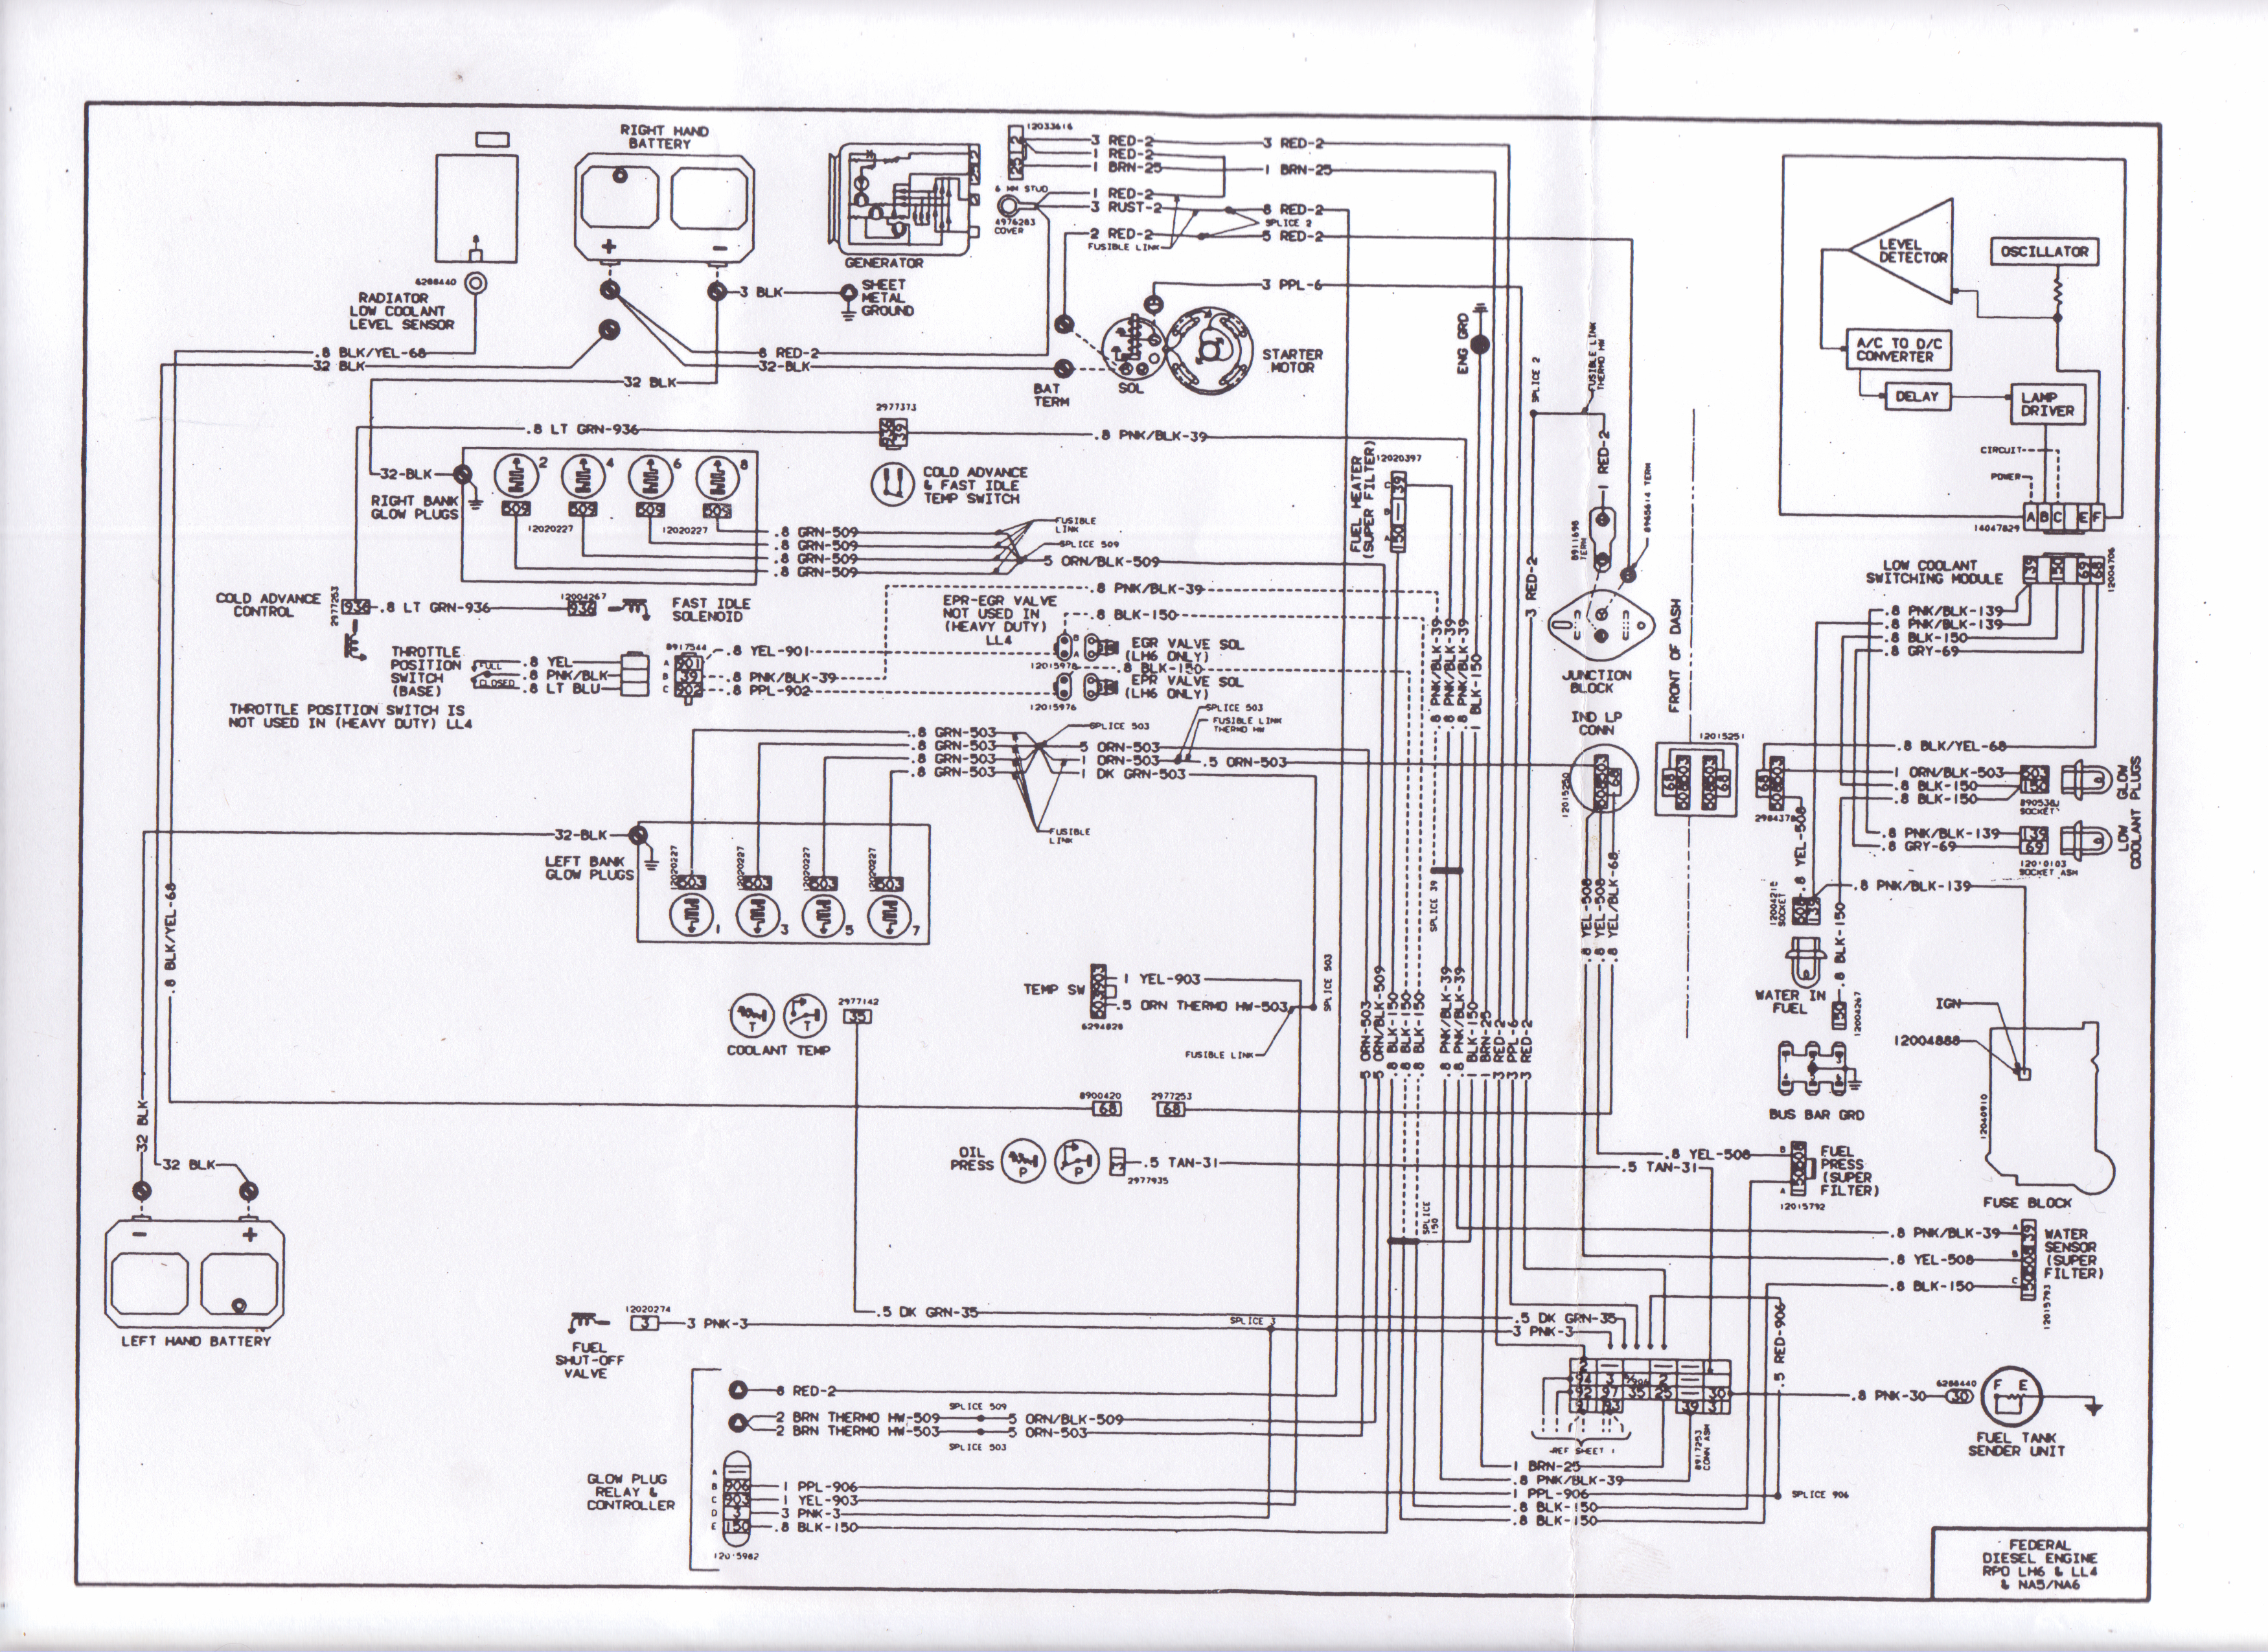 1990 Chevy 350 Starter Wiring Library Gmc Engine Diagram 93 6 2 Diesel Enthusiast Diagrams U2022 Rh Rasalibre Co